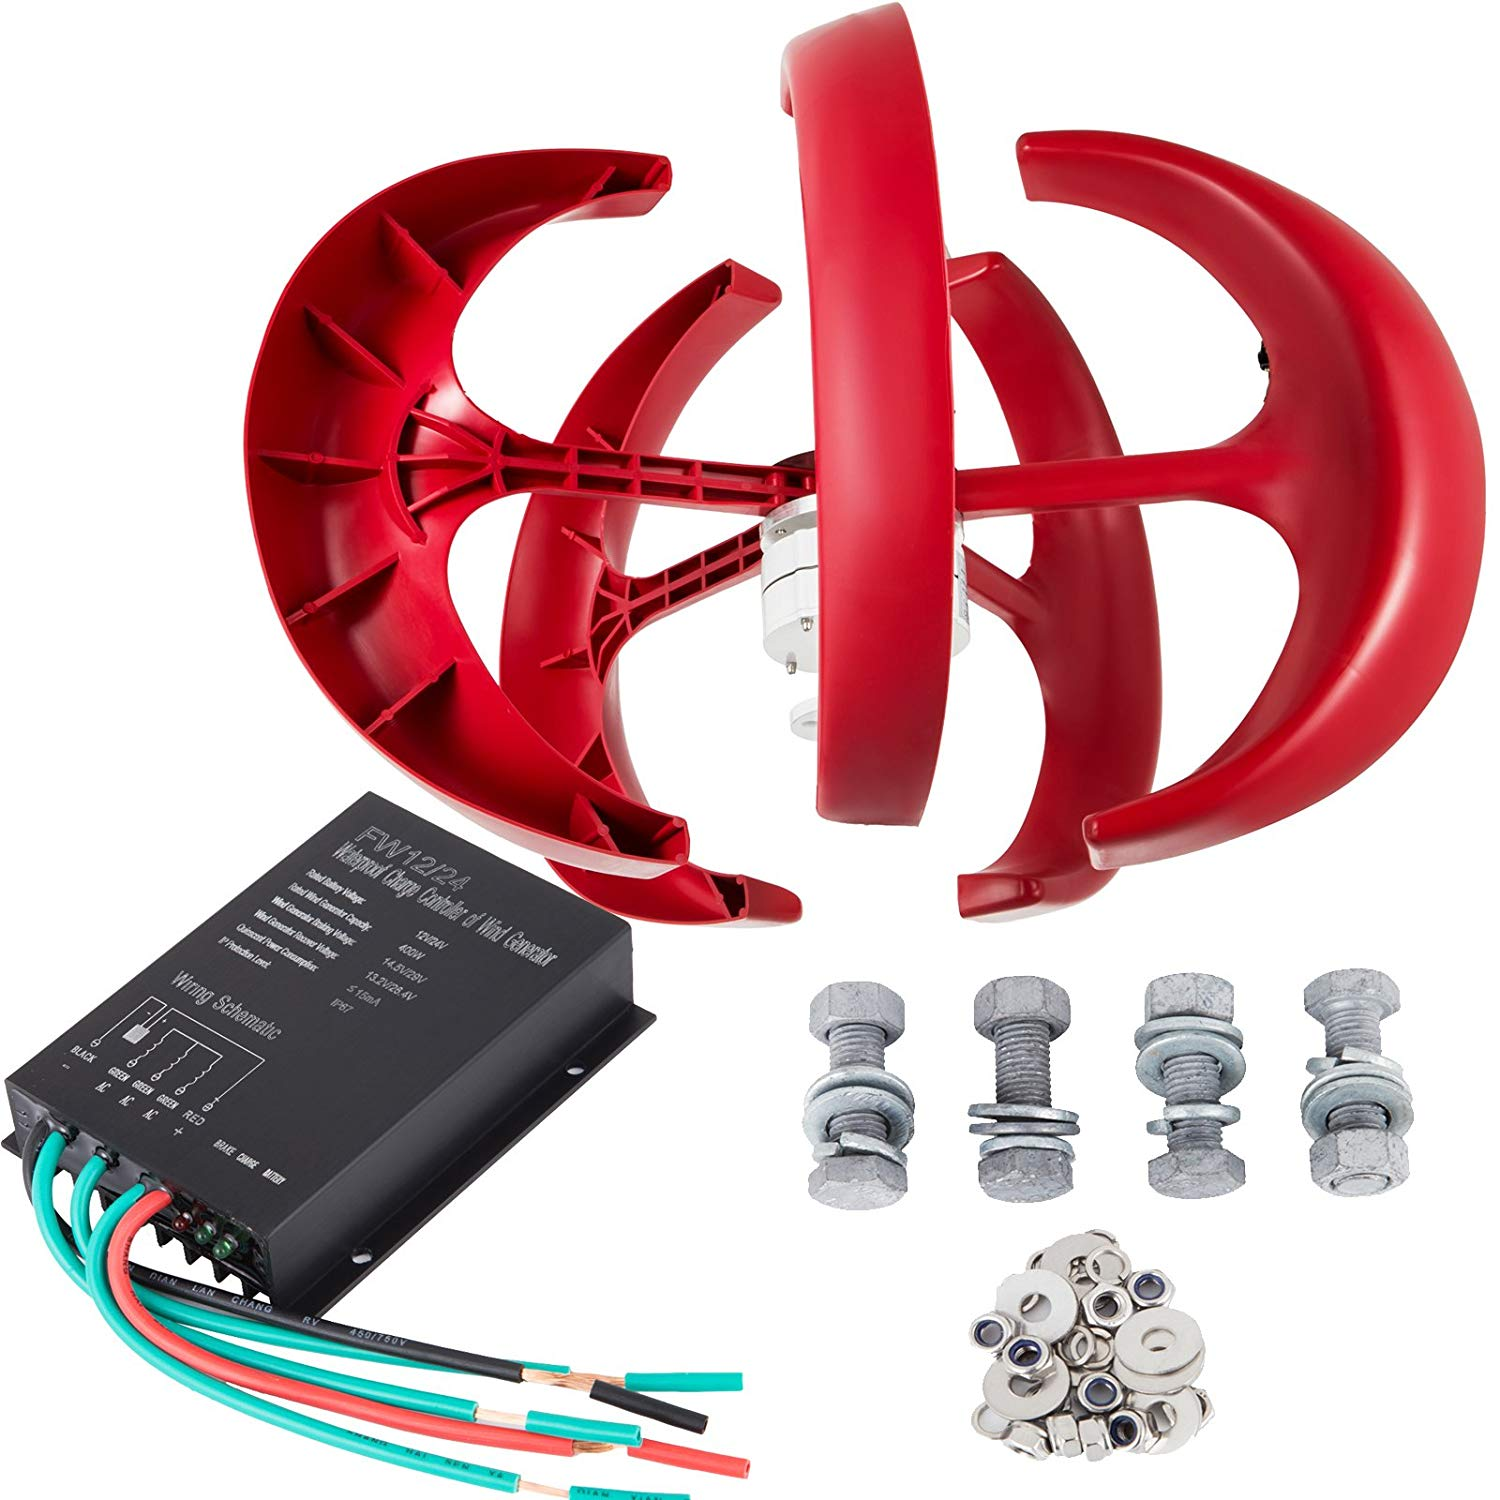 Cheap Generator For Vertical Wind Turbine Find Home Wiring Basics Get Quotations Lovshare 400w Dc 12v Kit 5pcs Blades Power Red